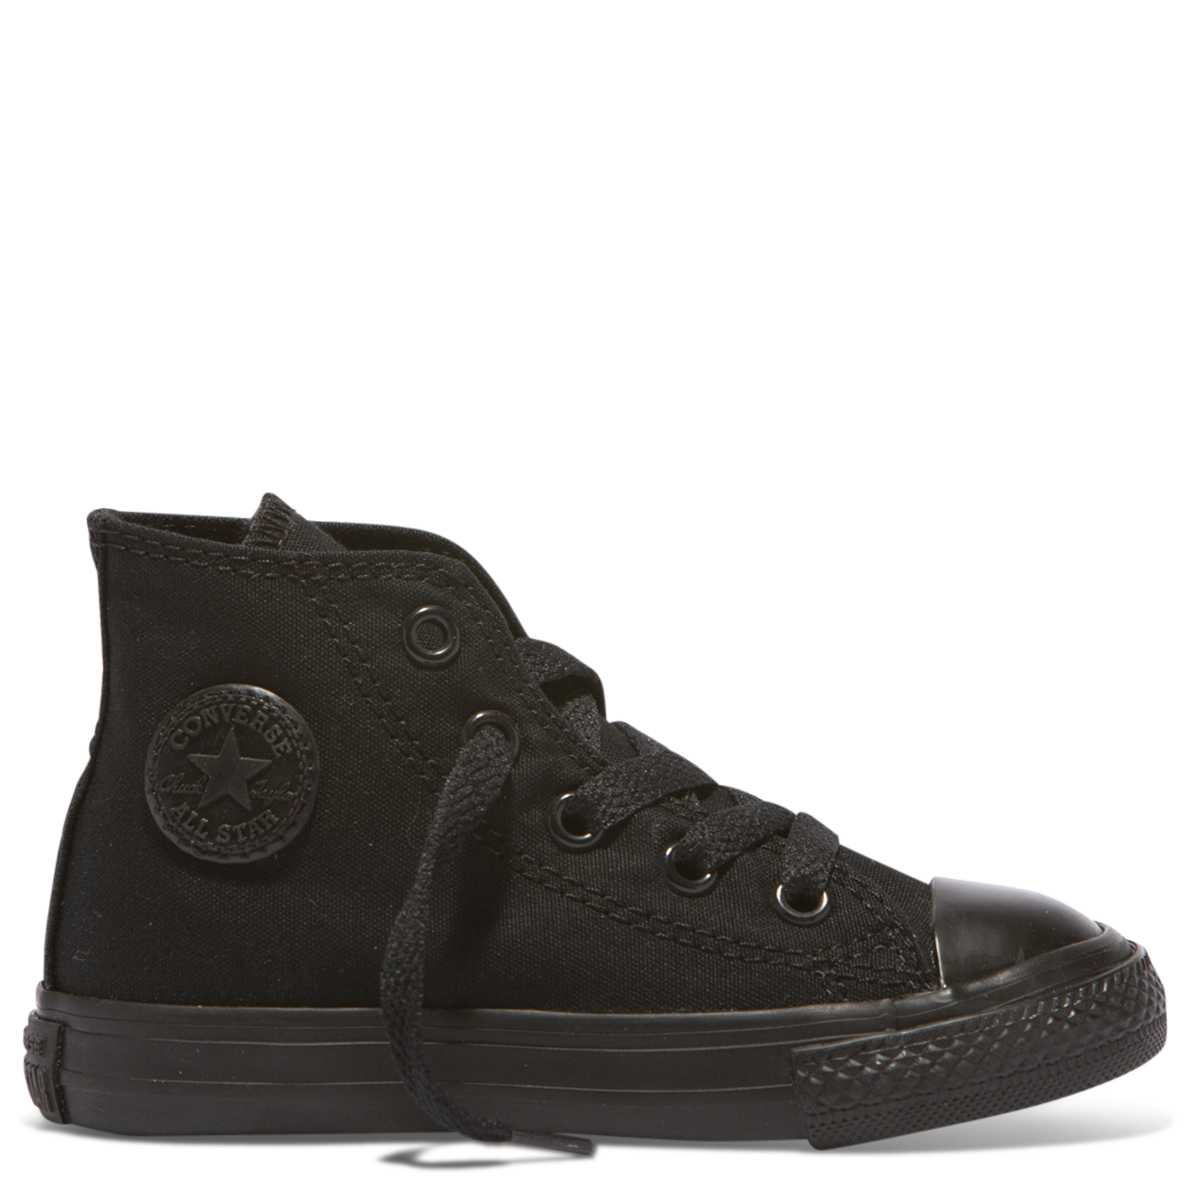 183f47f4e772f9 Converse Kids Chuck Taylor All Star Toddler High Top Black Monochrome –  Tiny Style